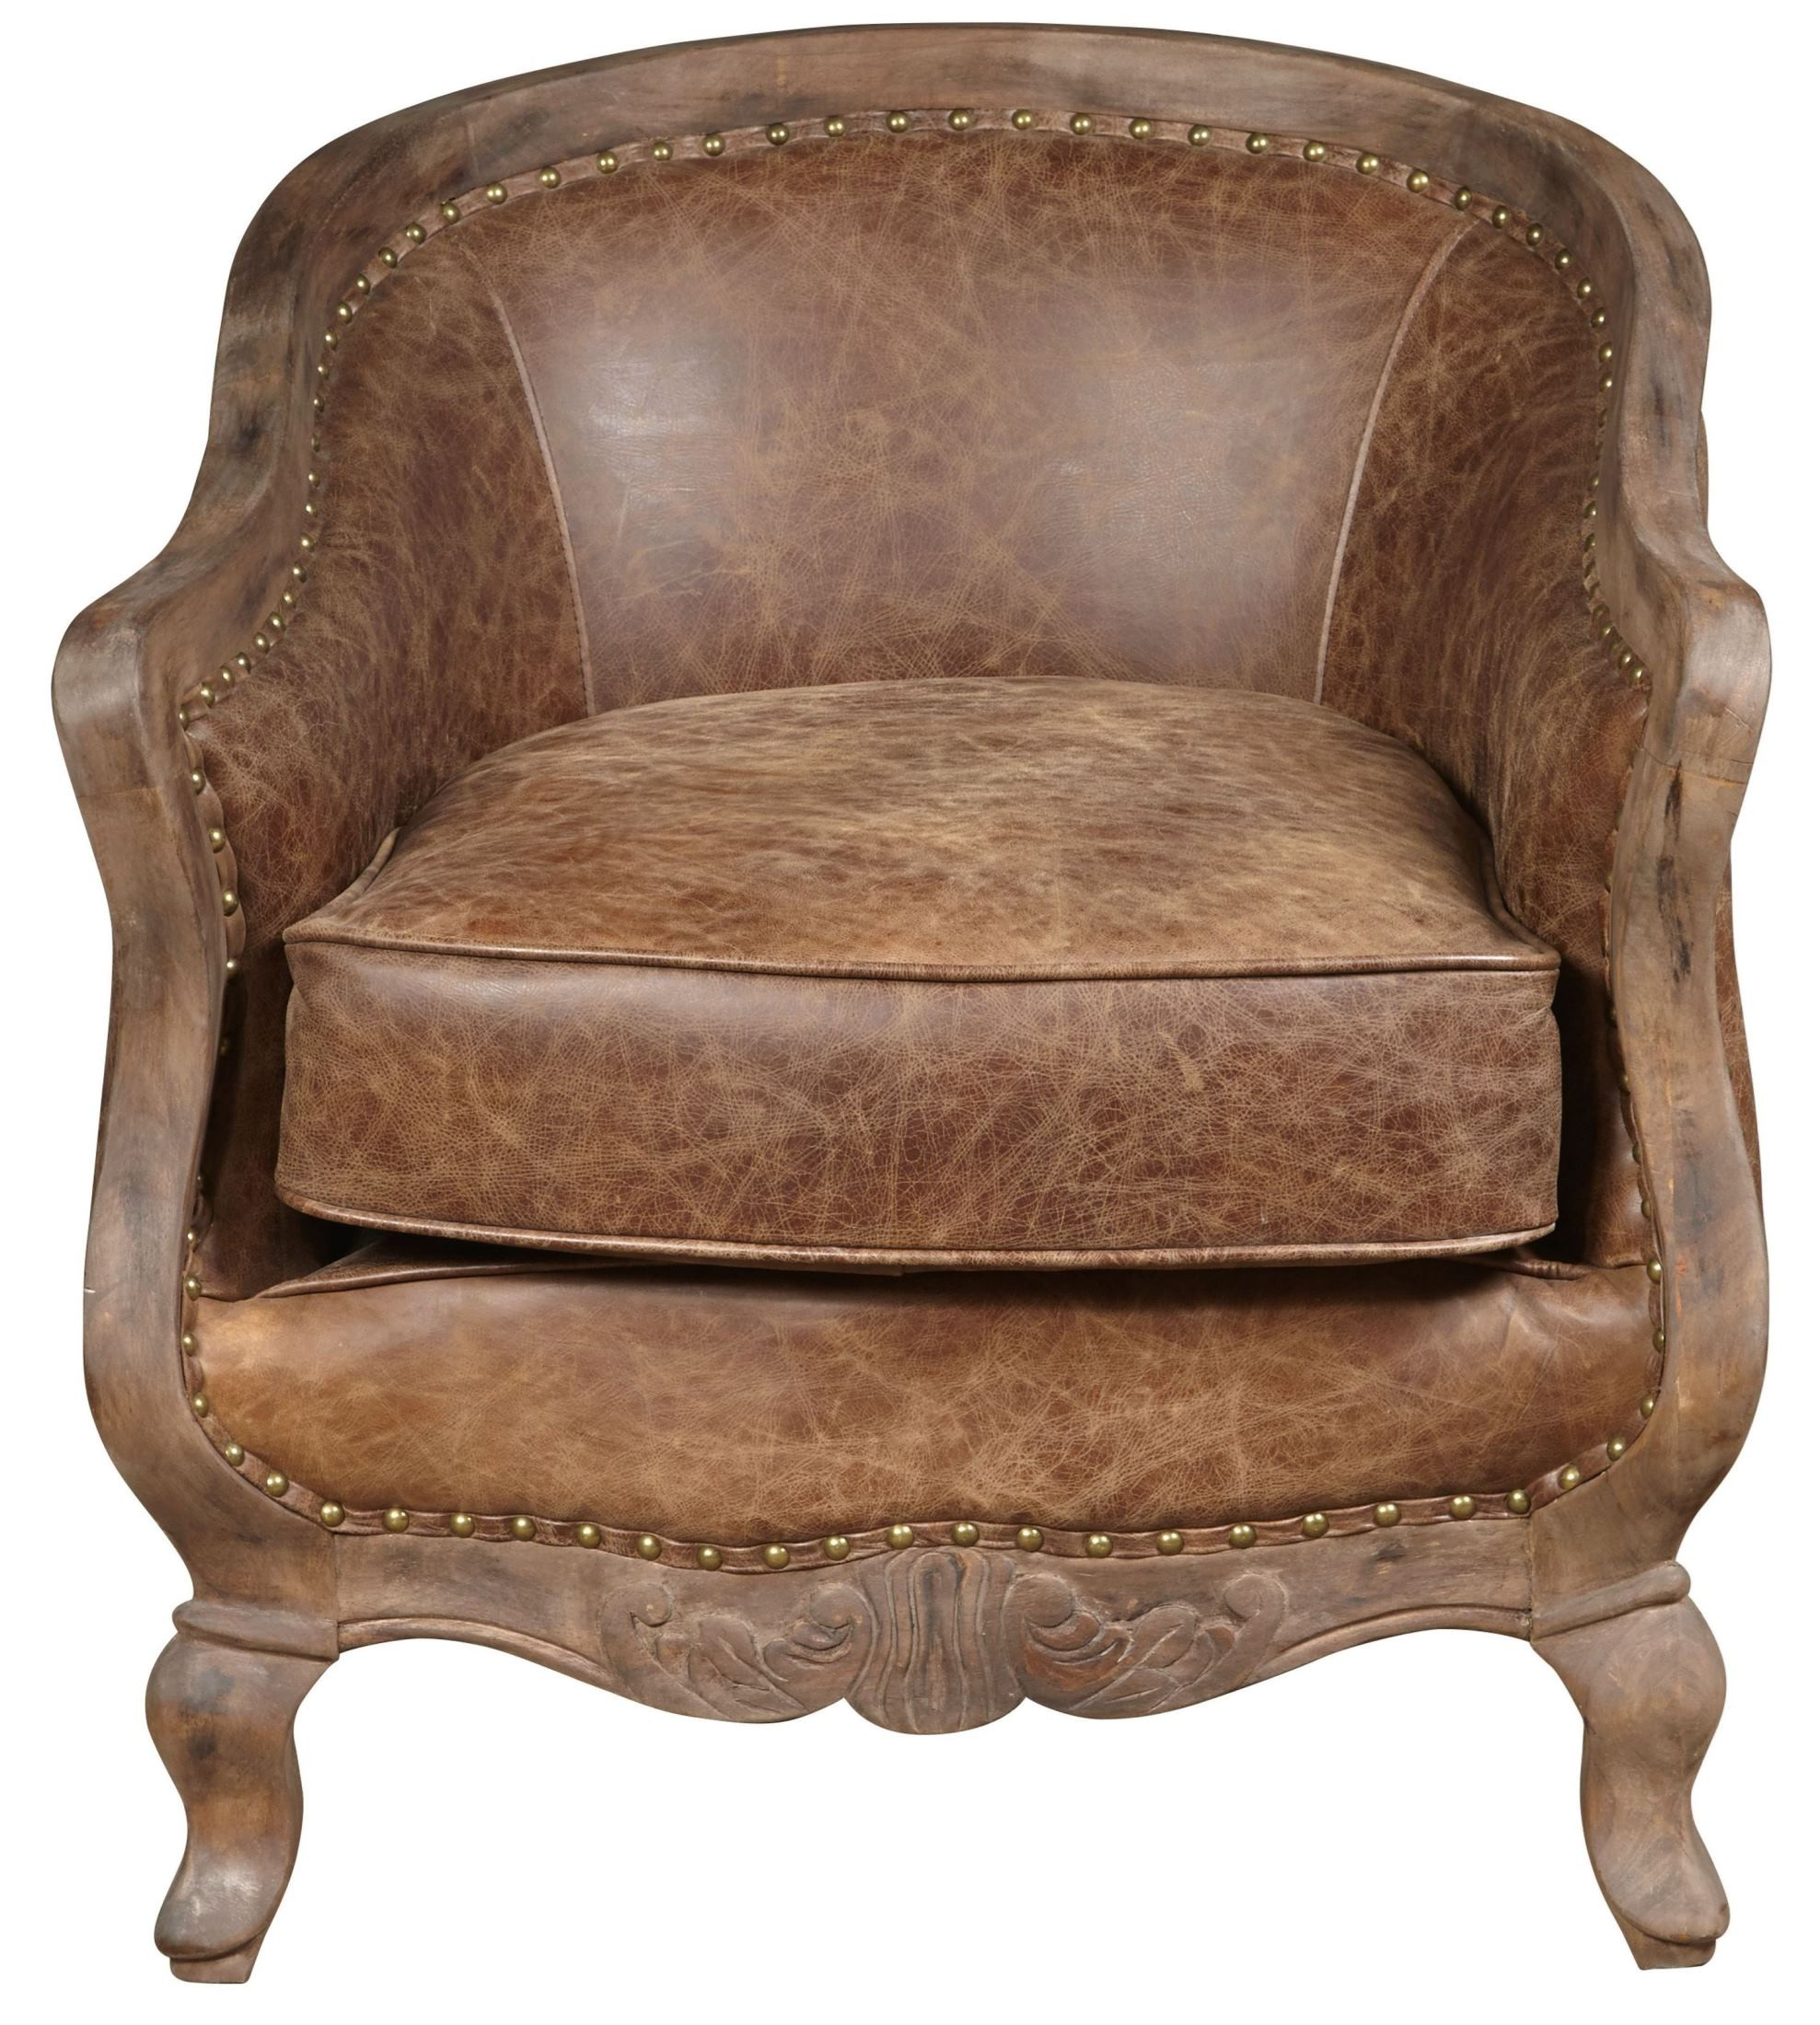 Tan Leather Accent Chair: Sloane Brown Leather Accent Chair, P006206, Pulaski